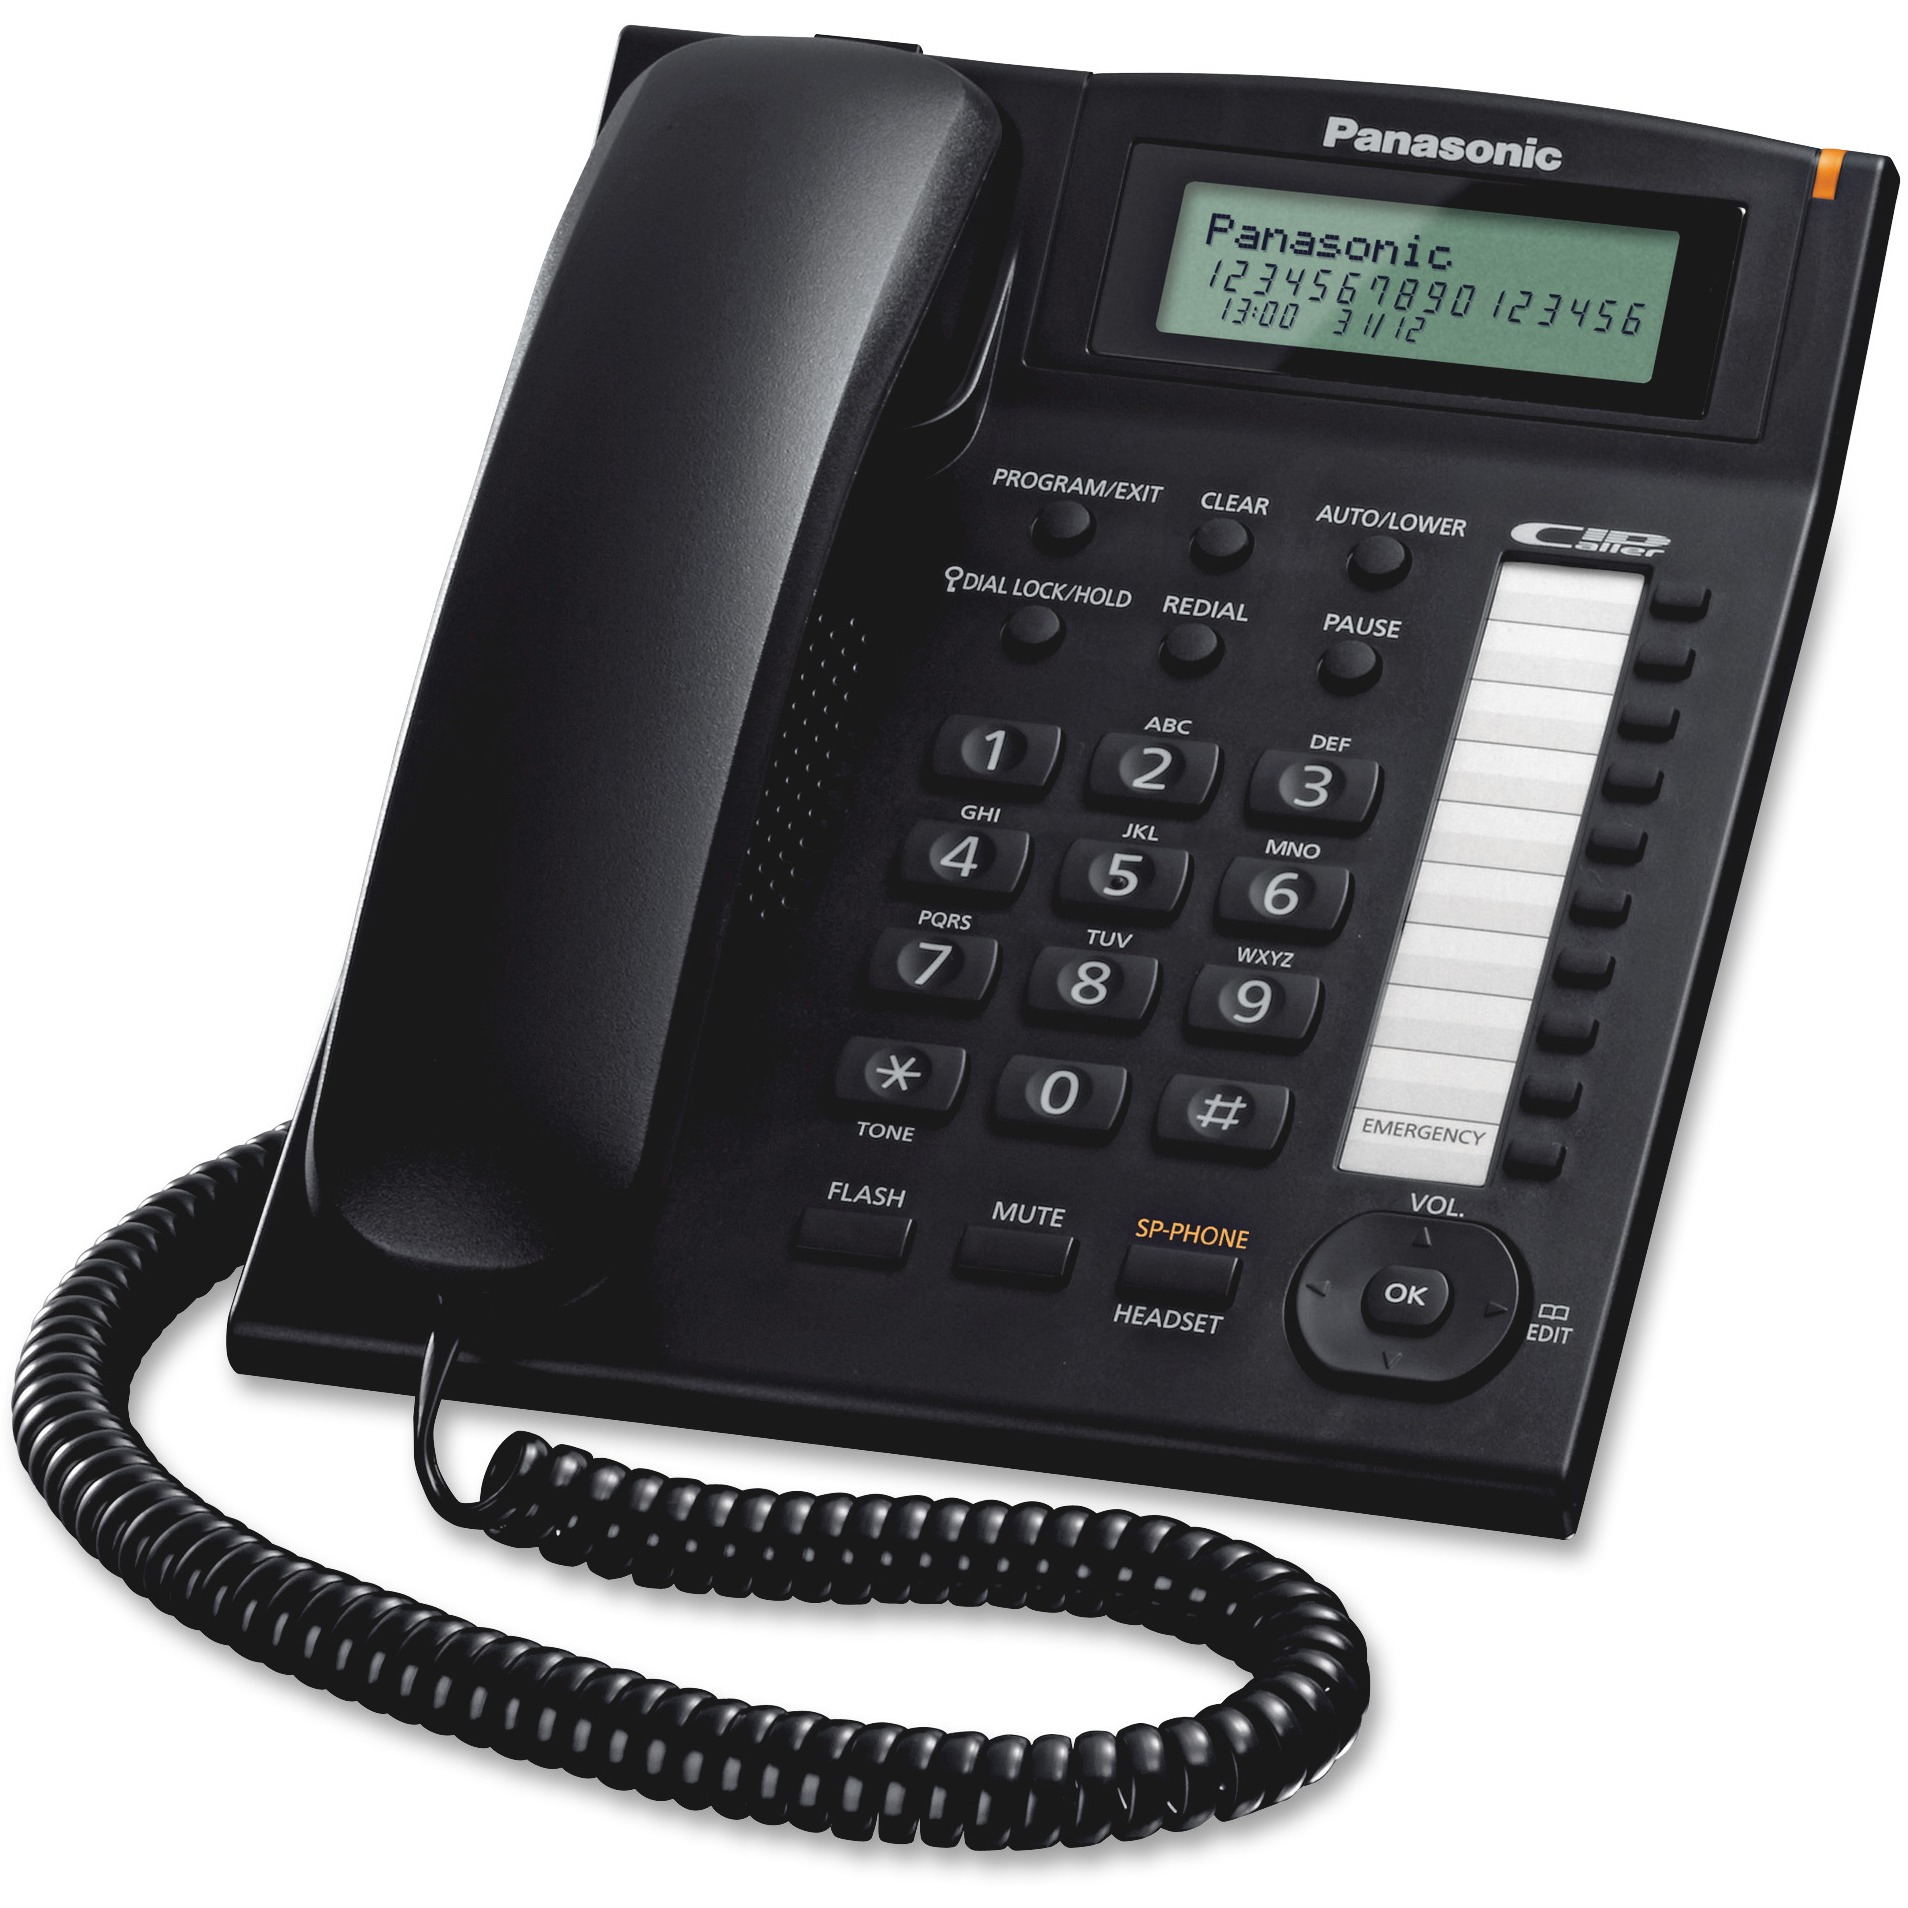 Panasonic, PANKXTS880B, 1-tch Dialer Stations Bus. Phone System, 1